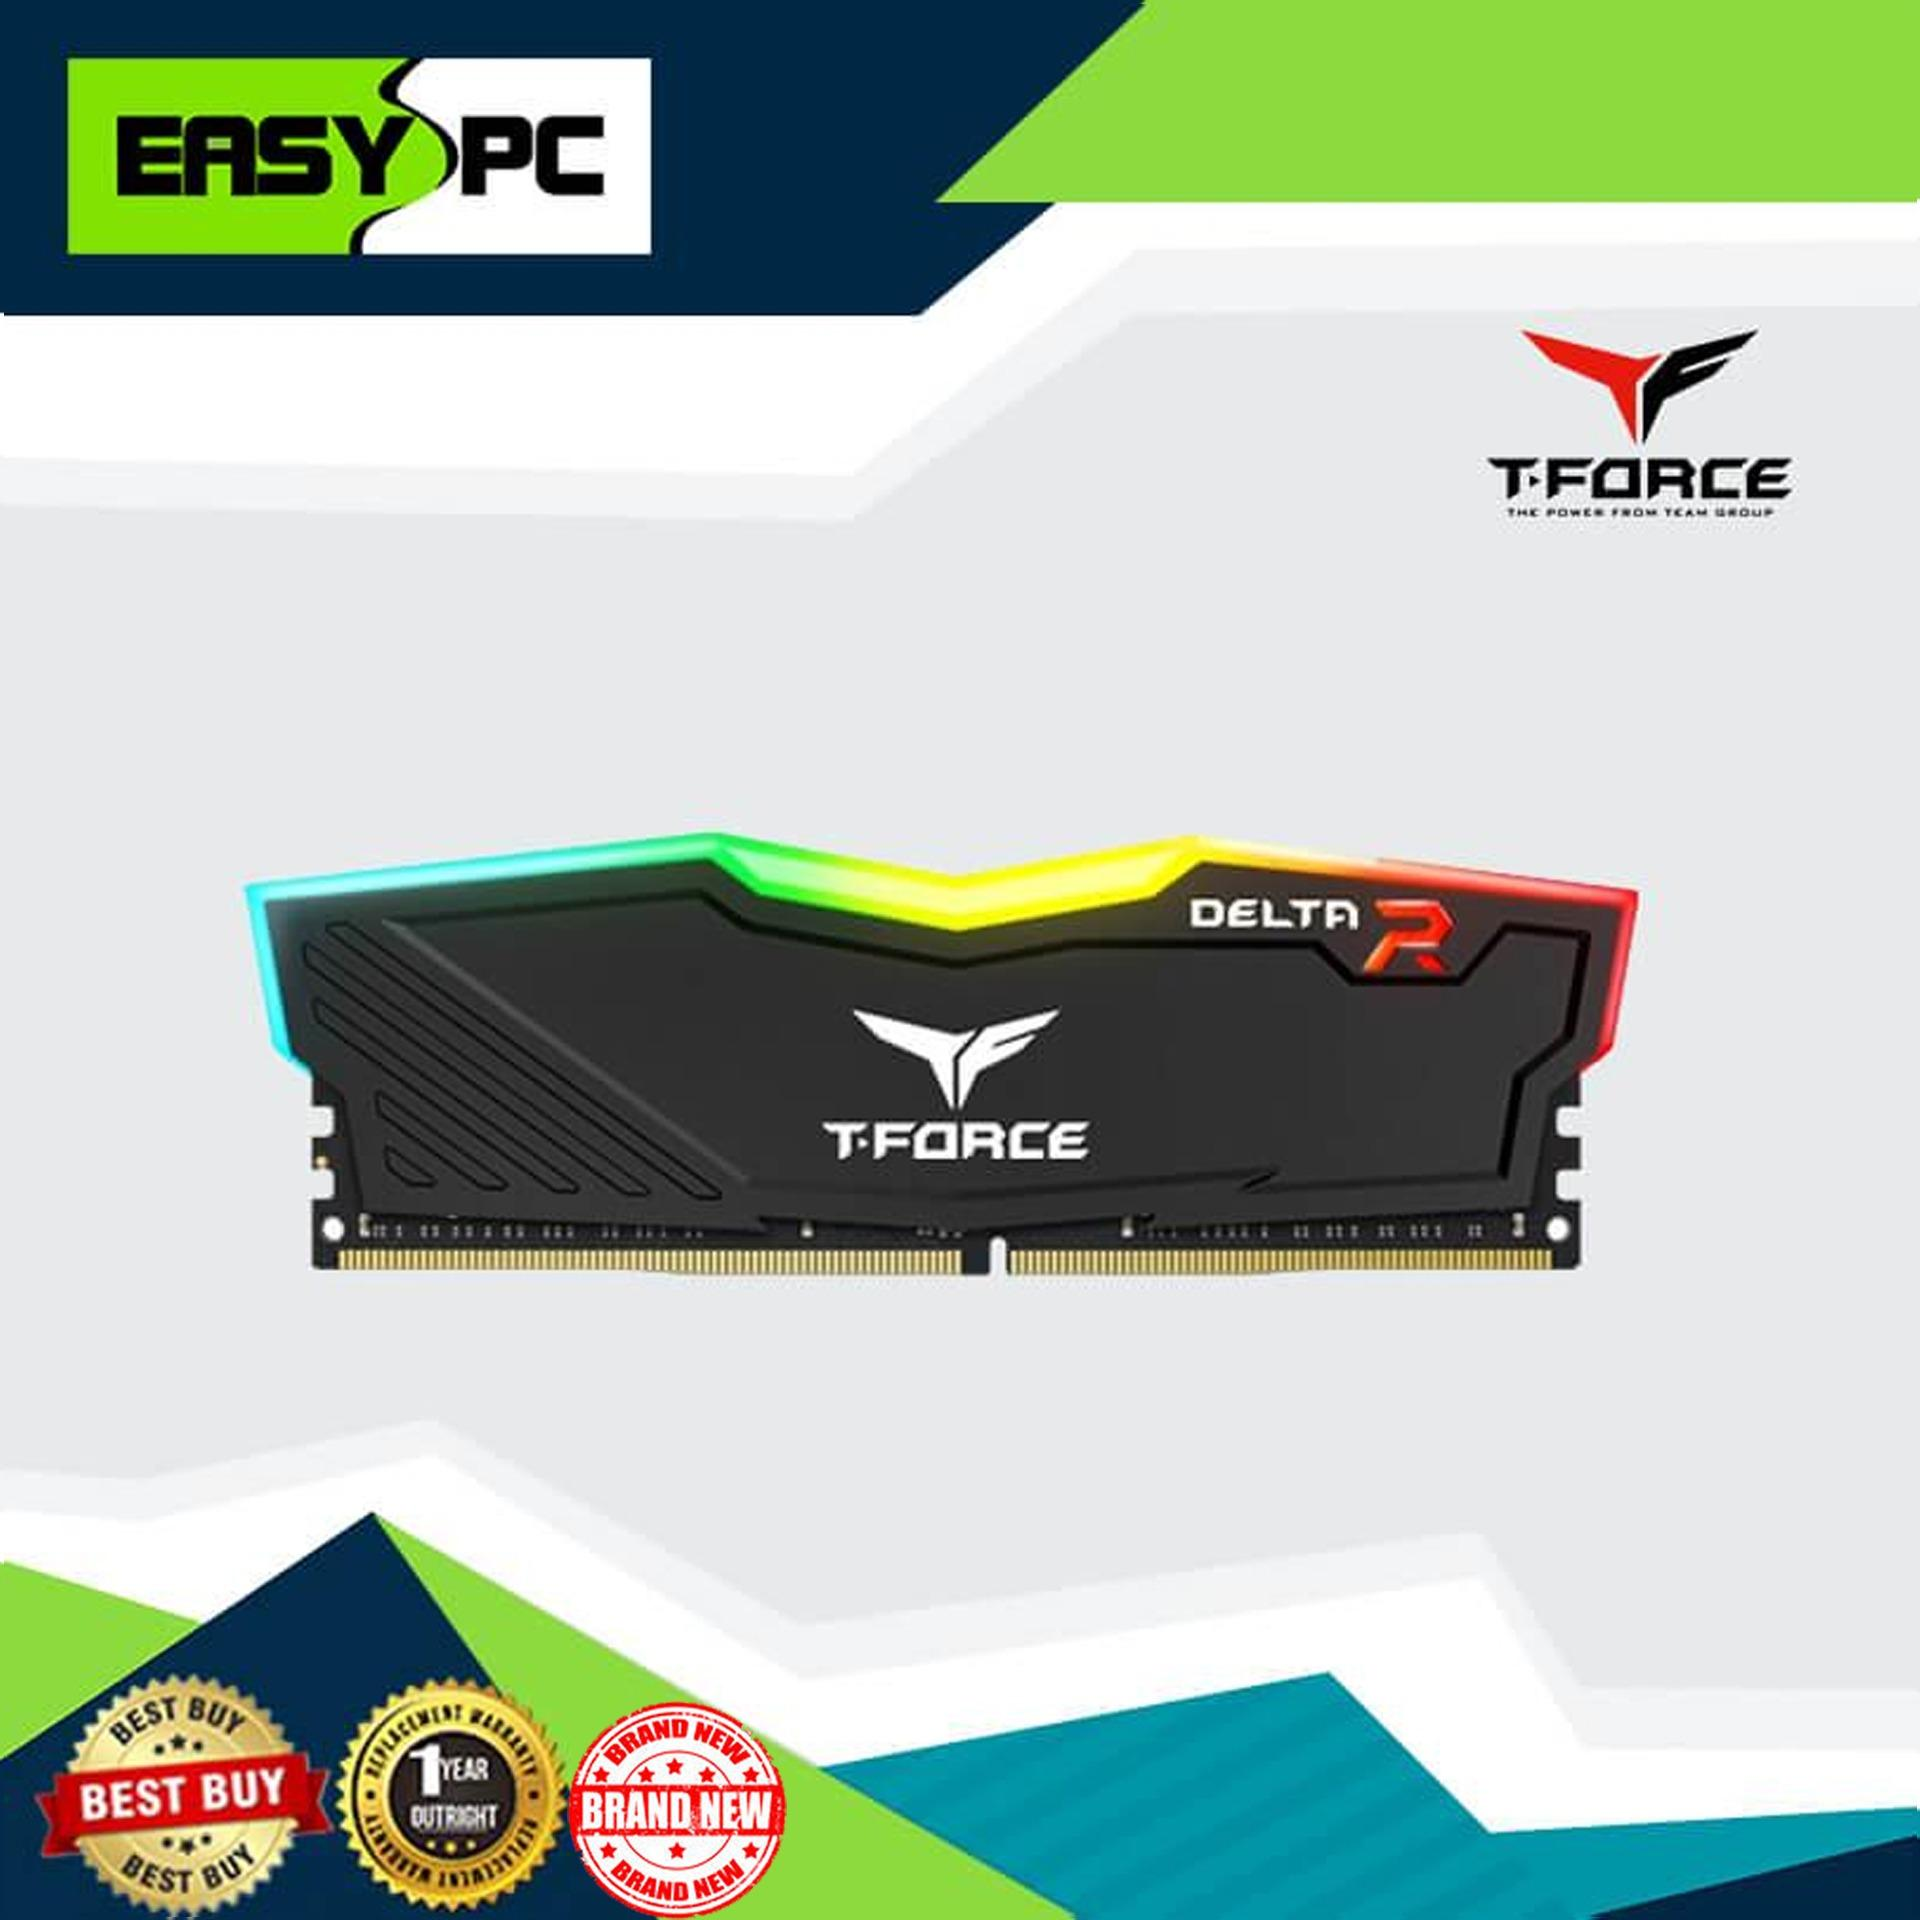 TeamGroup T-Force Delta RGB DDR4 SINGLE CHANNEL 2666Mhz 1 X 8GB 1.2V Black with Aluminum alloy heat spreader supports T-FORCE BLITZ, ASUS Aura Sync, 1 click Overclock with XMP2.0 Intel/AMD DDR4 motherboard compatible for Gaming Desktop.